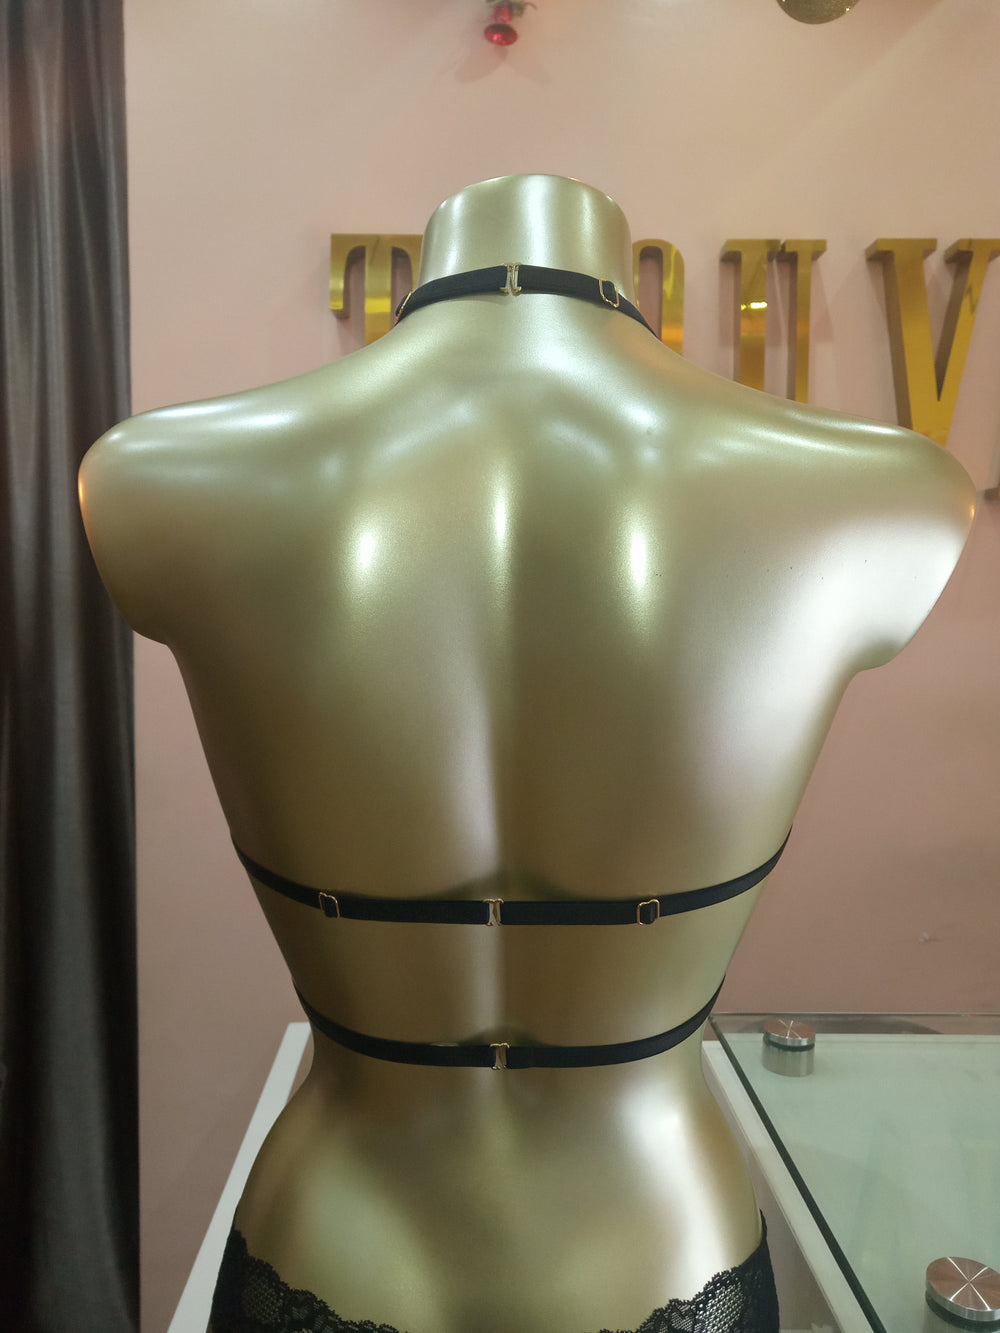 Sexy lingerie harness, honeymoon, bridal shower gifts store Lagos